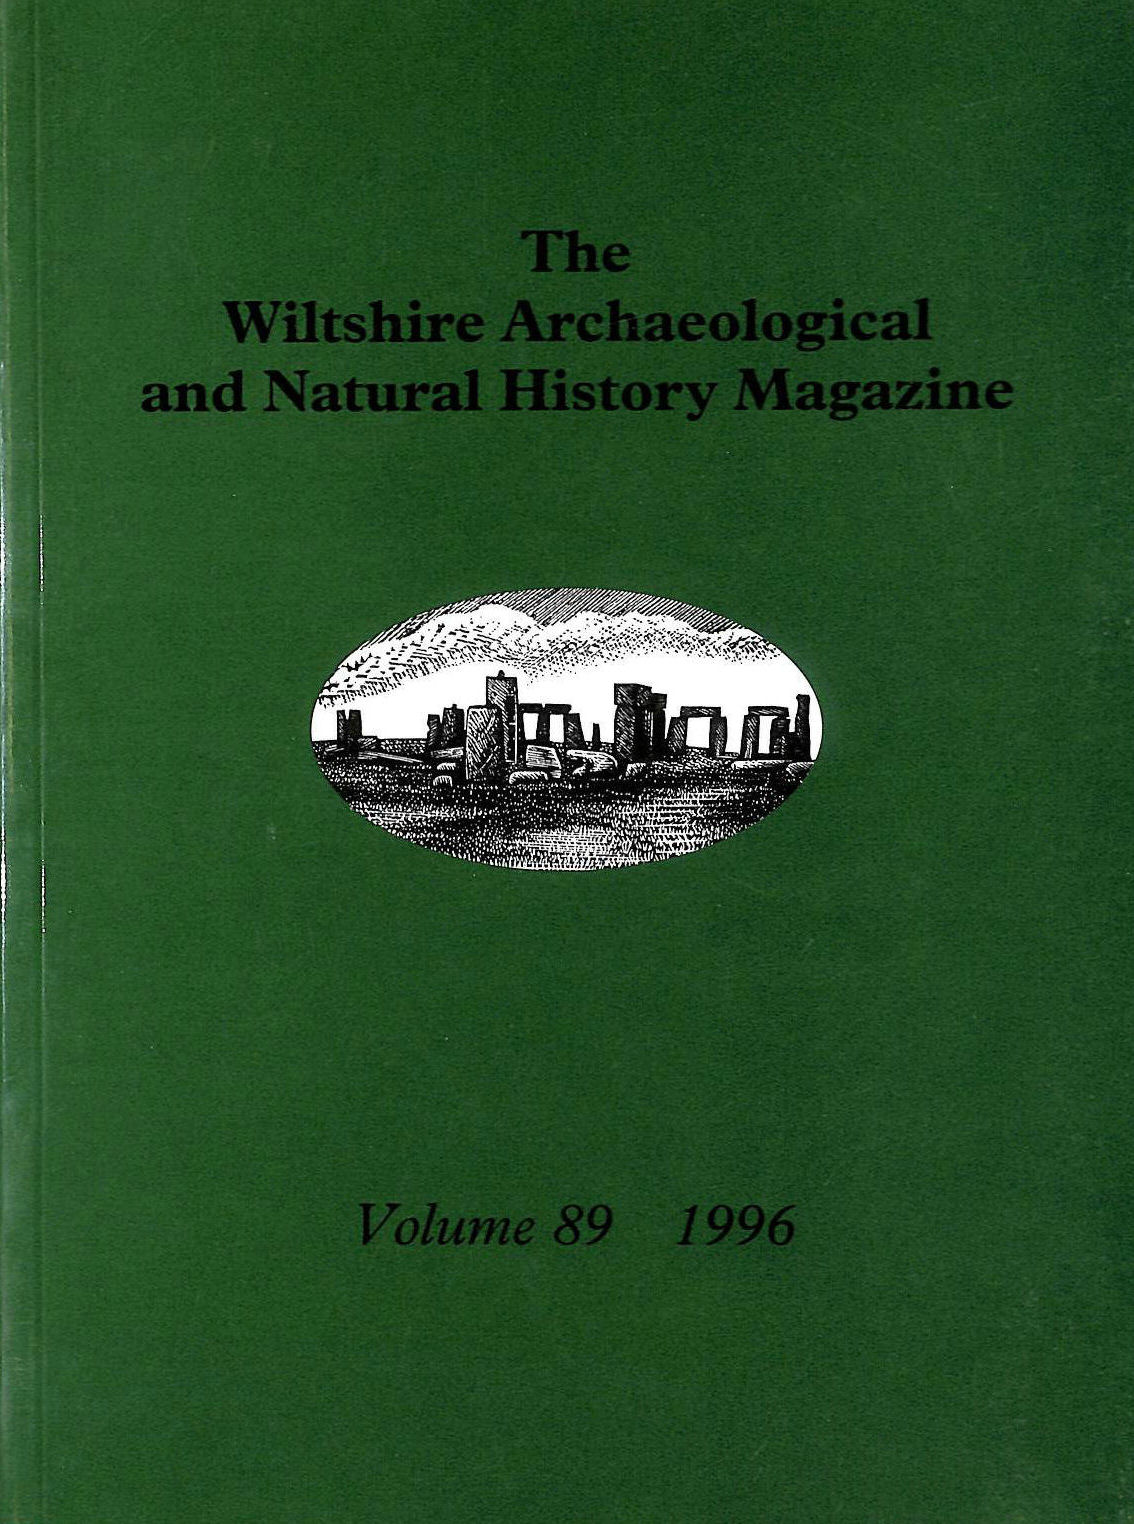 Image for The Wiltshire Archaeological and Natural History Magazine Volume 89 1996